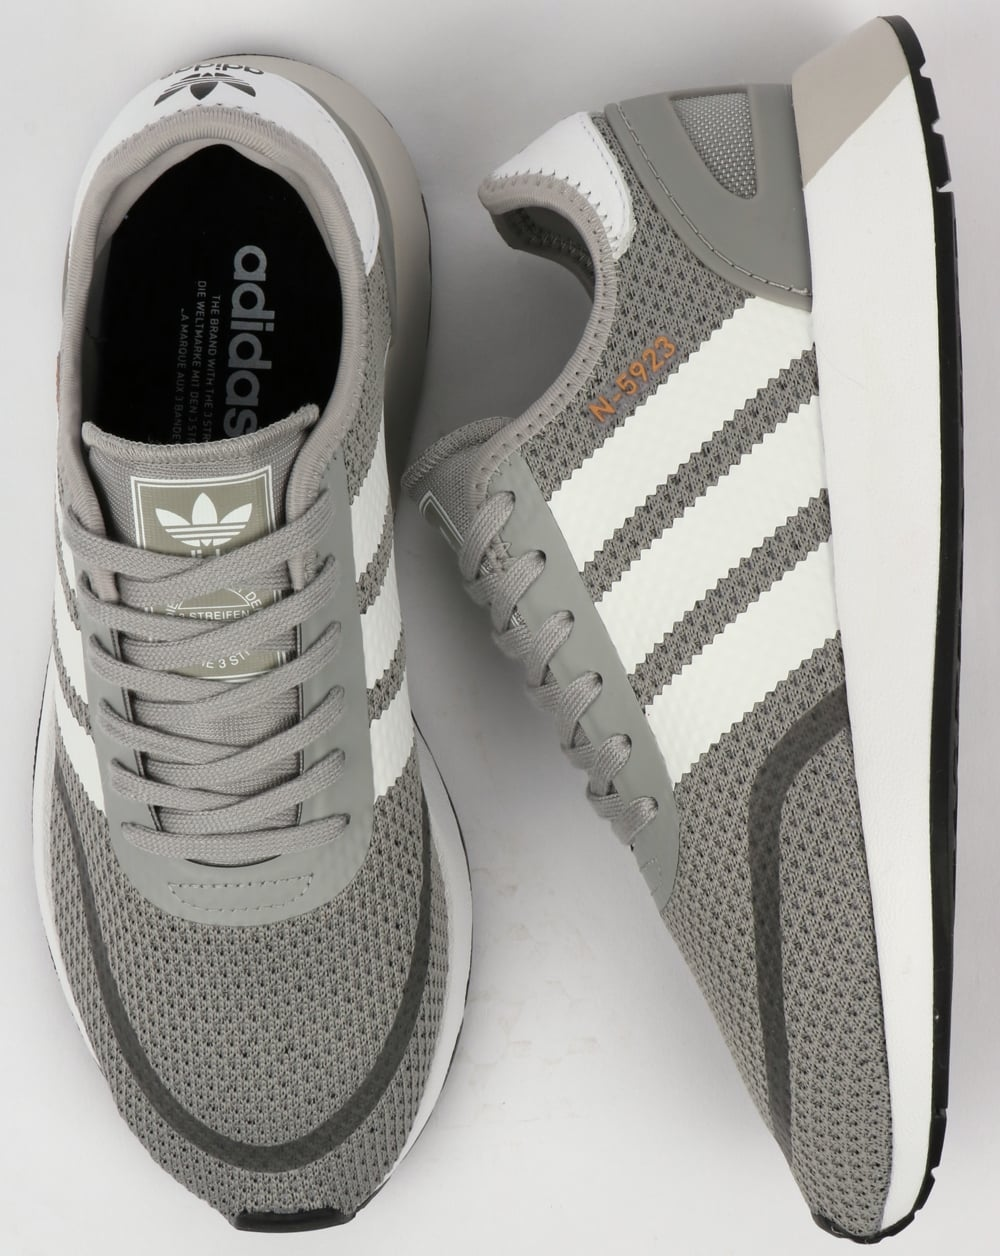 intersección recoger Inconcebible  Adidas N-5923 Trainers Solid Grey/White,iniki,runner,70s,shoes,originals